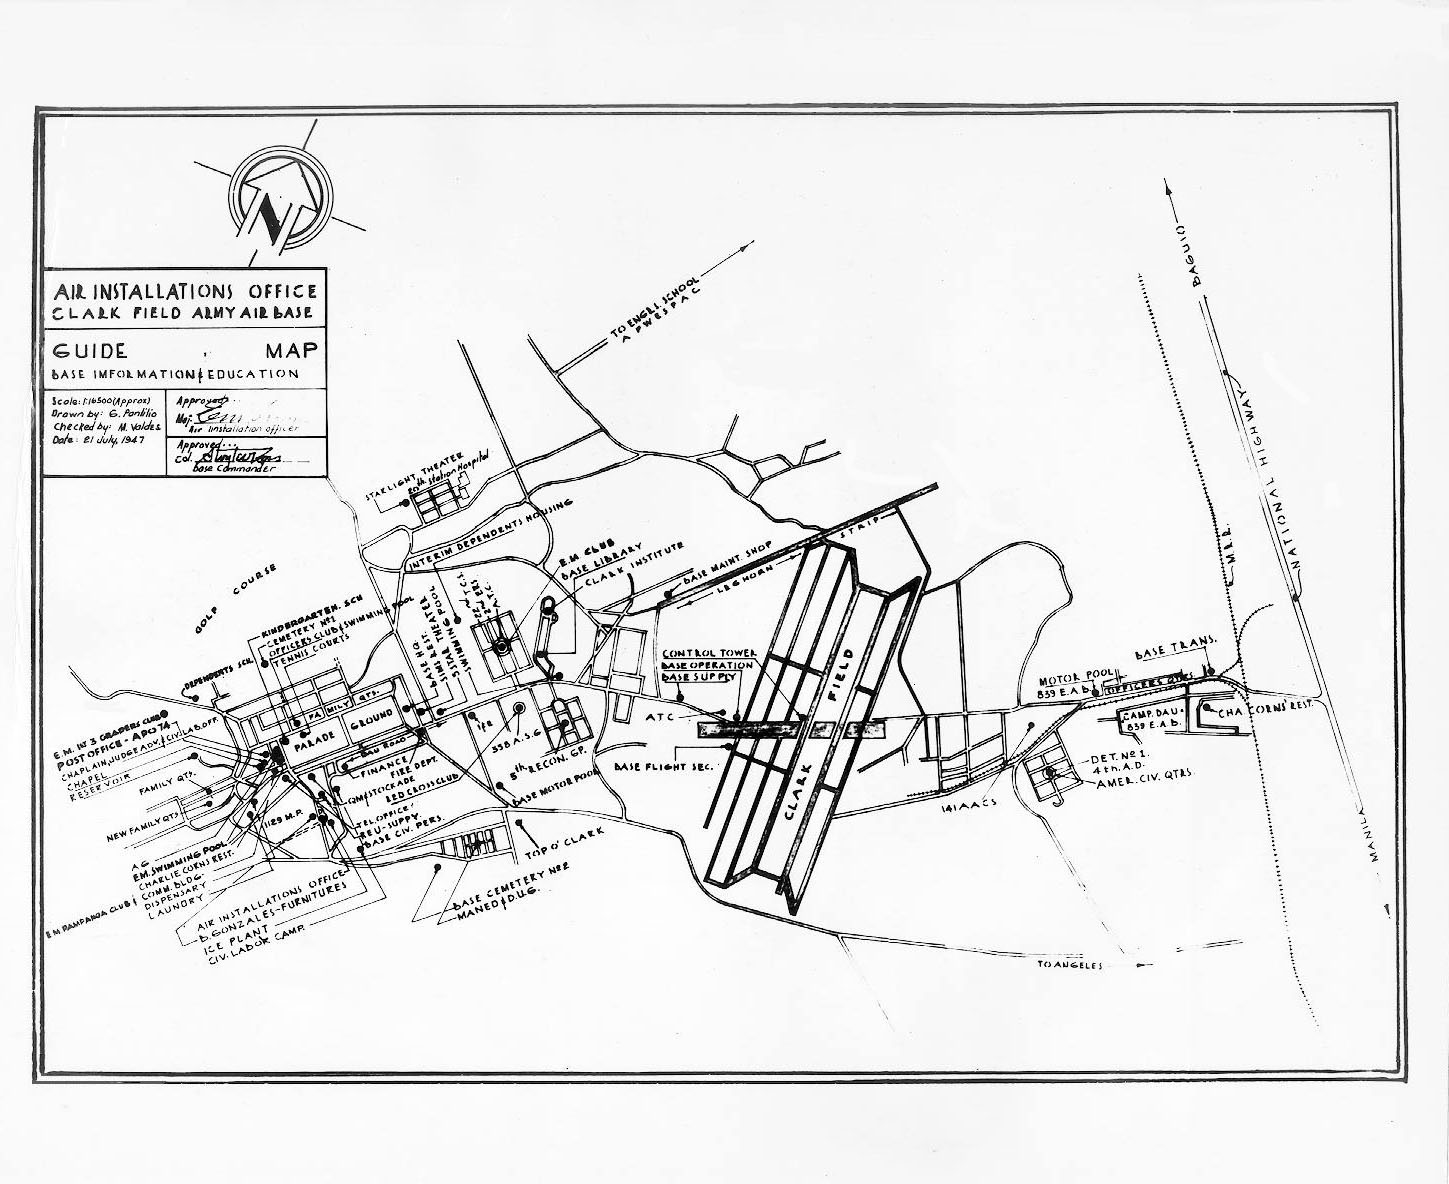 Philippines clark air base maps charts and blueprints historical base maps malvernweather Images